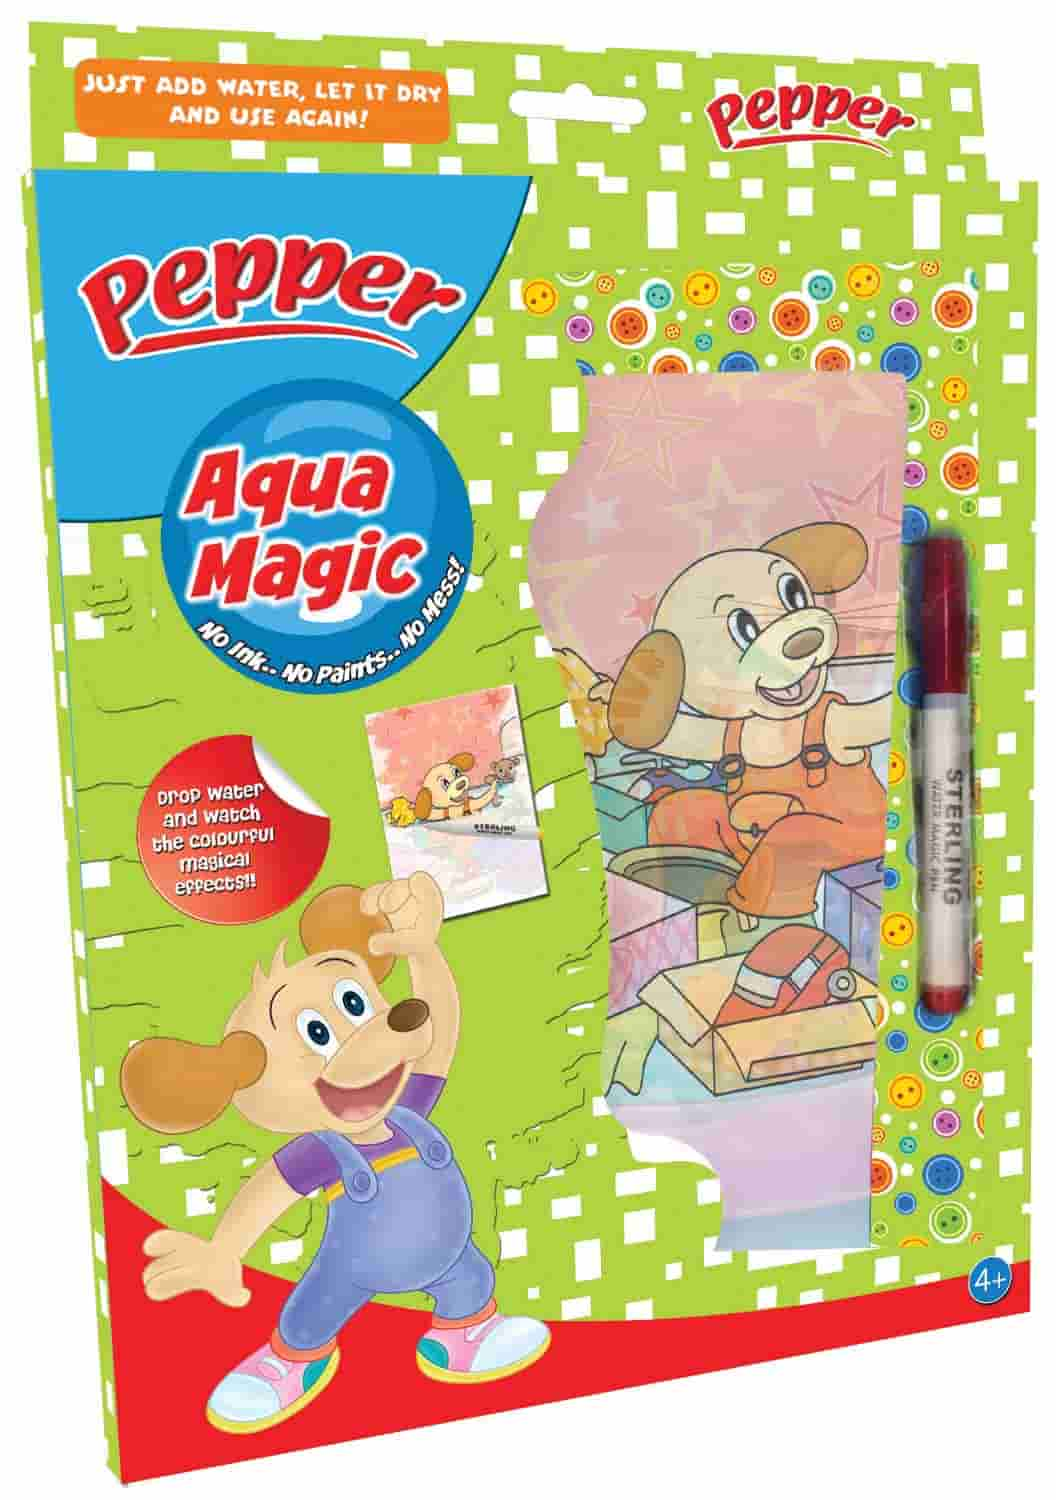 Pepper Aqua magic